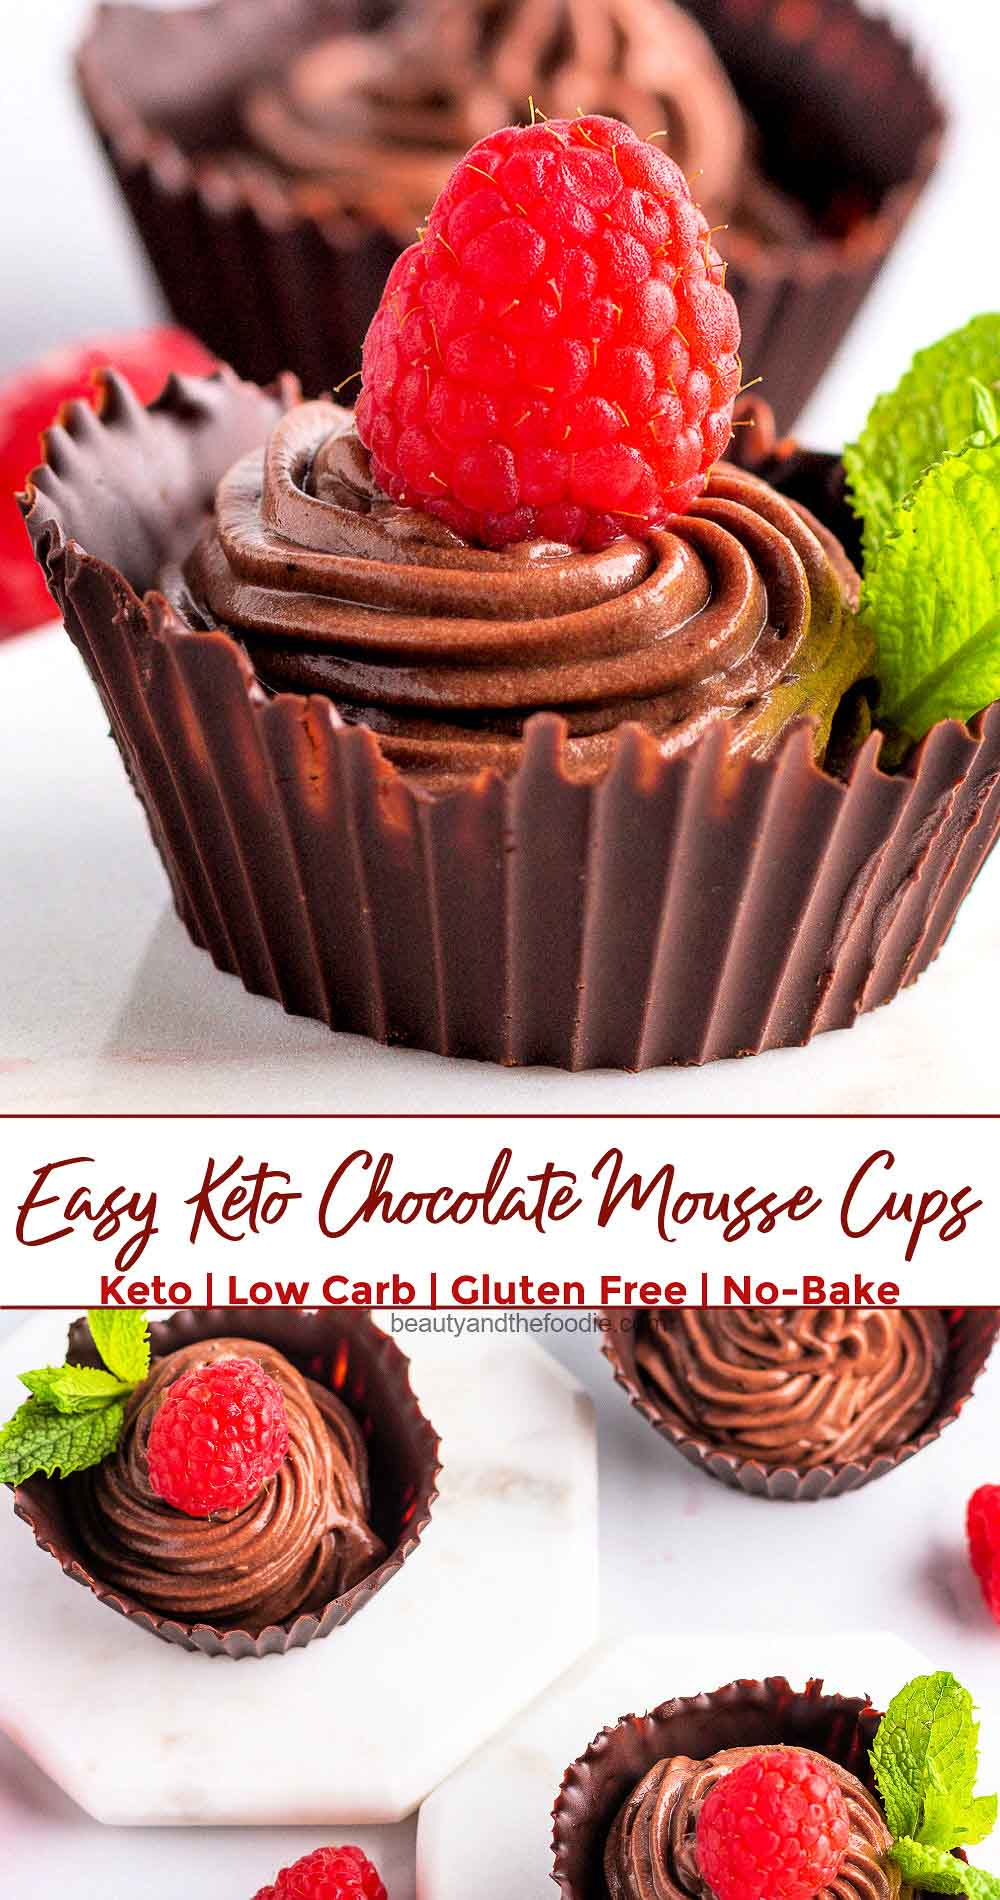 Four chocolate cups filled with chocolate mousse and topped with a raspberry.